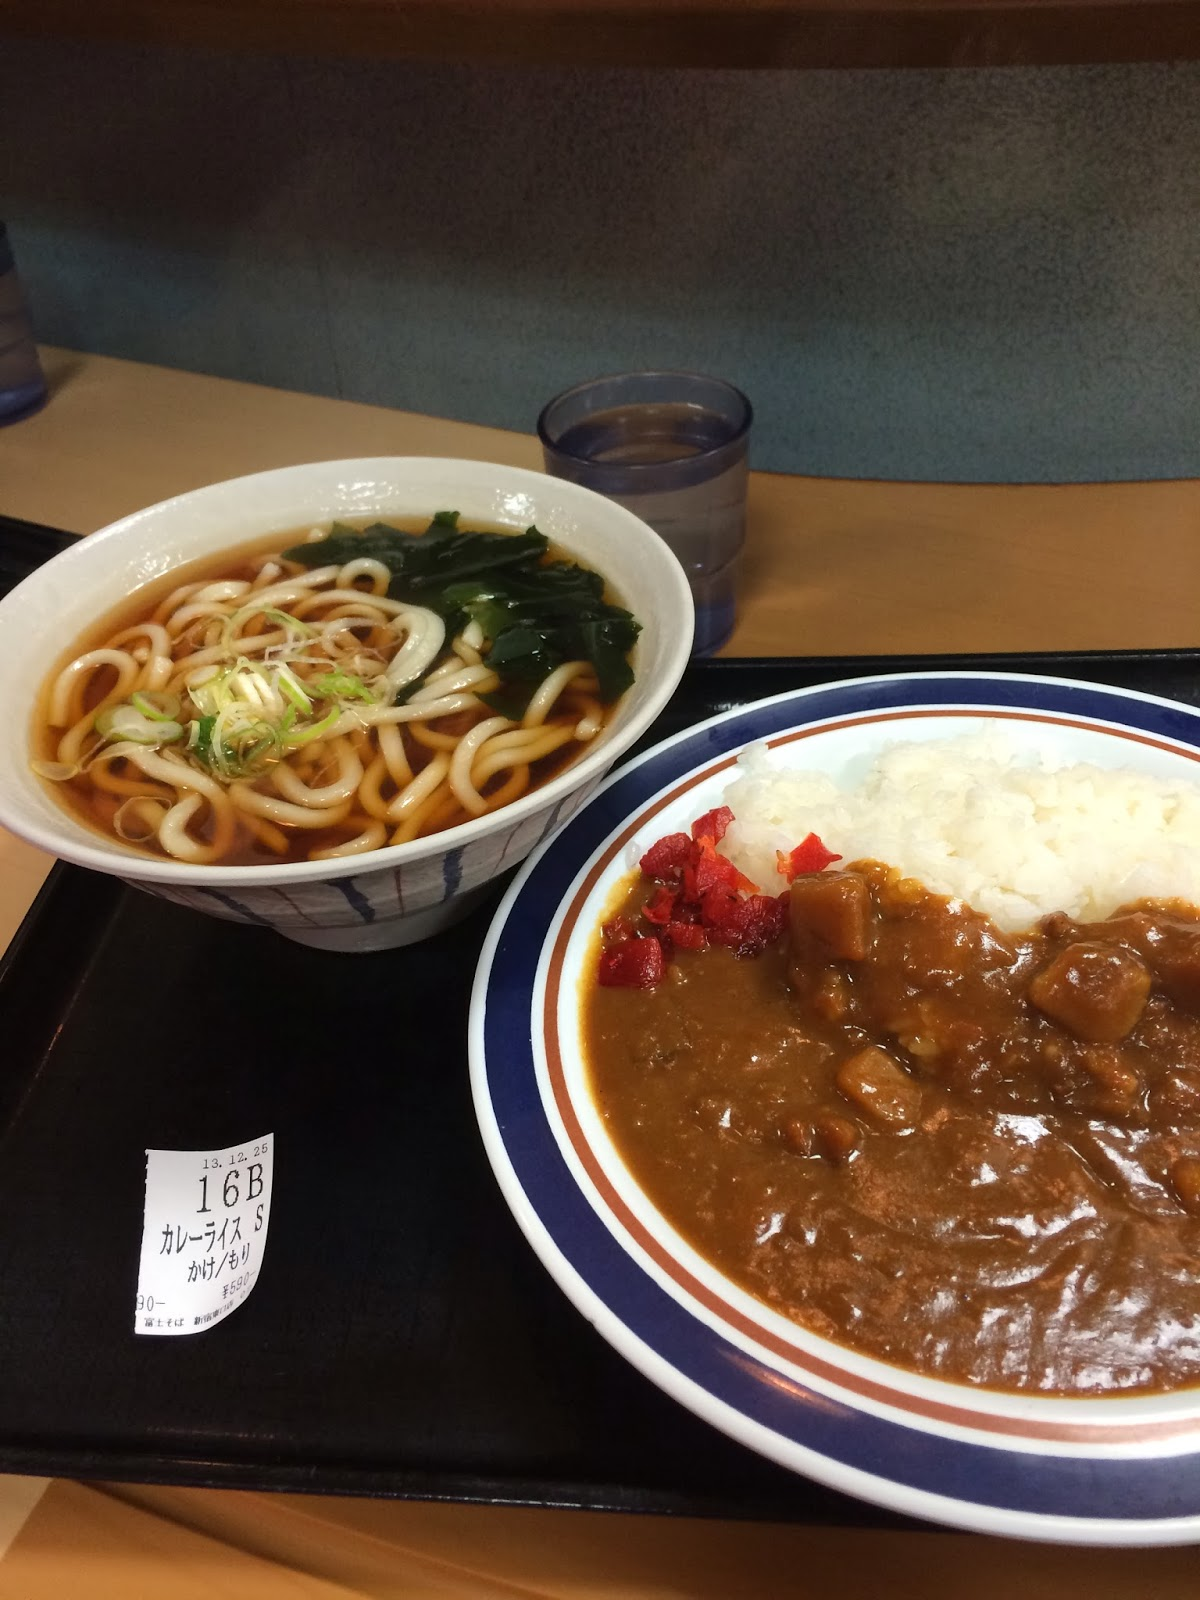 Bowl of udon noodles and Japanese curry